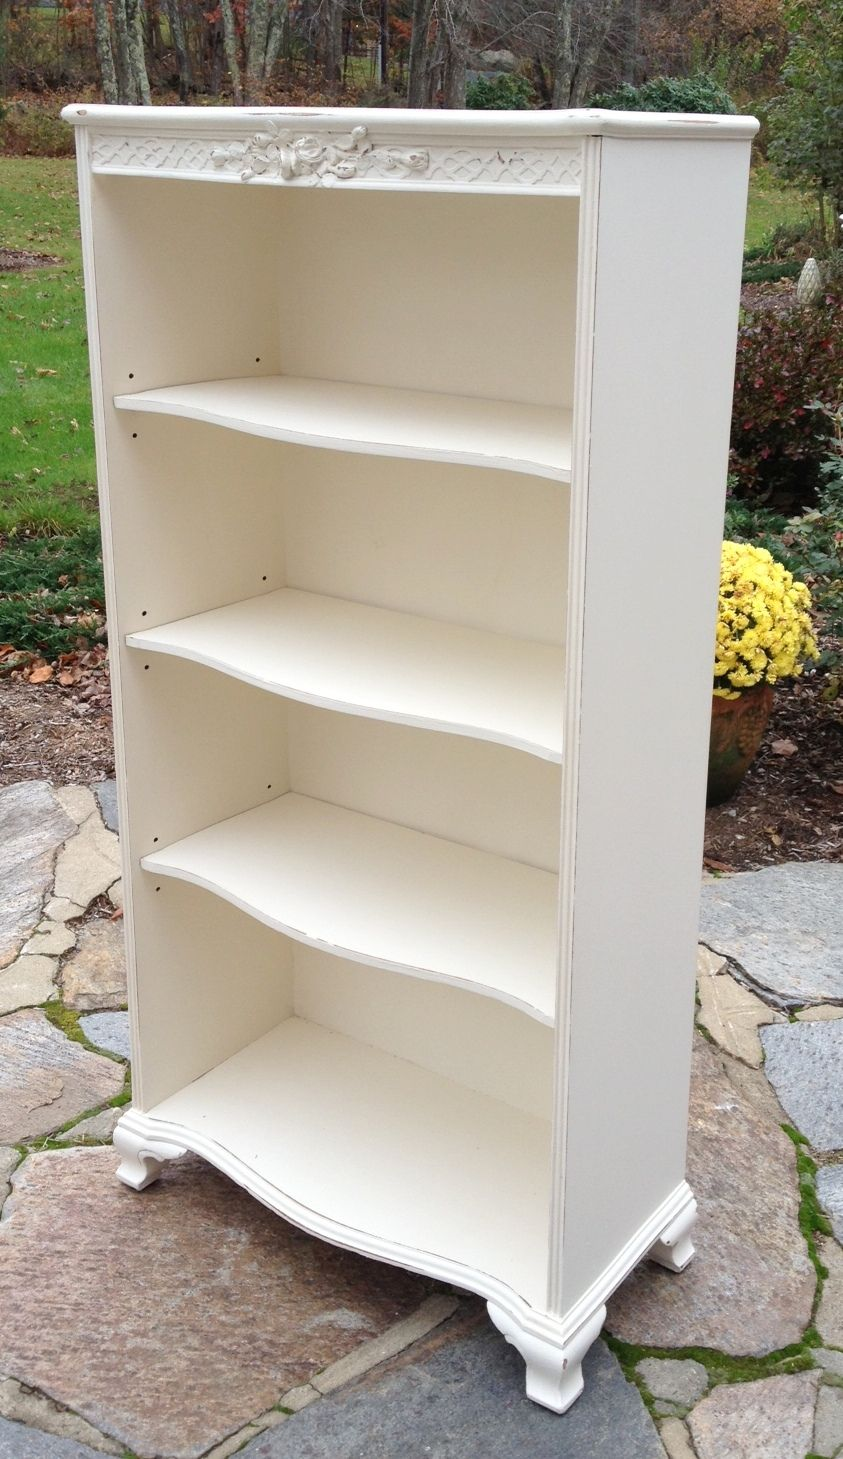 Large Slimline Shabby Chic Bookcase artwork – White Bookcases for Sale